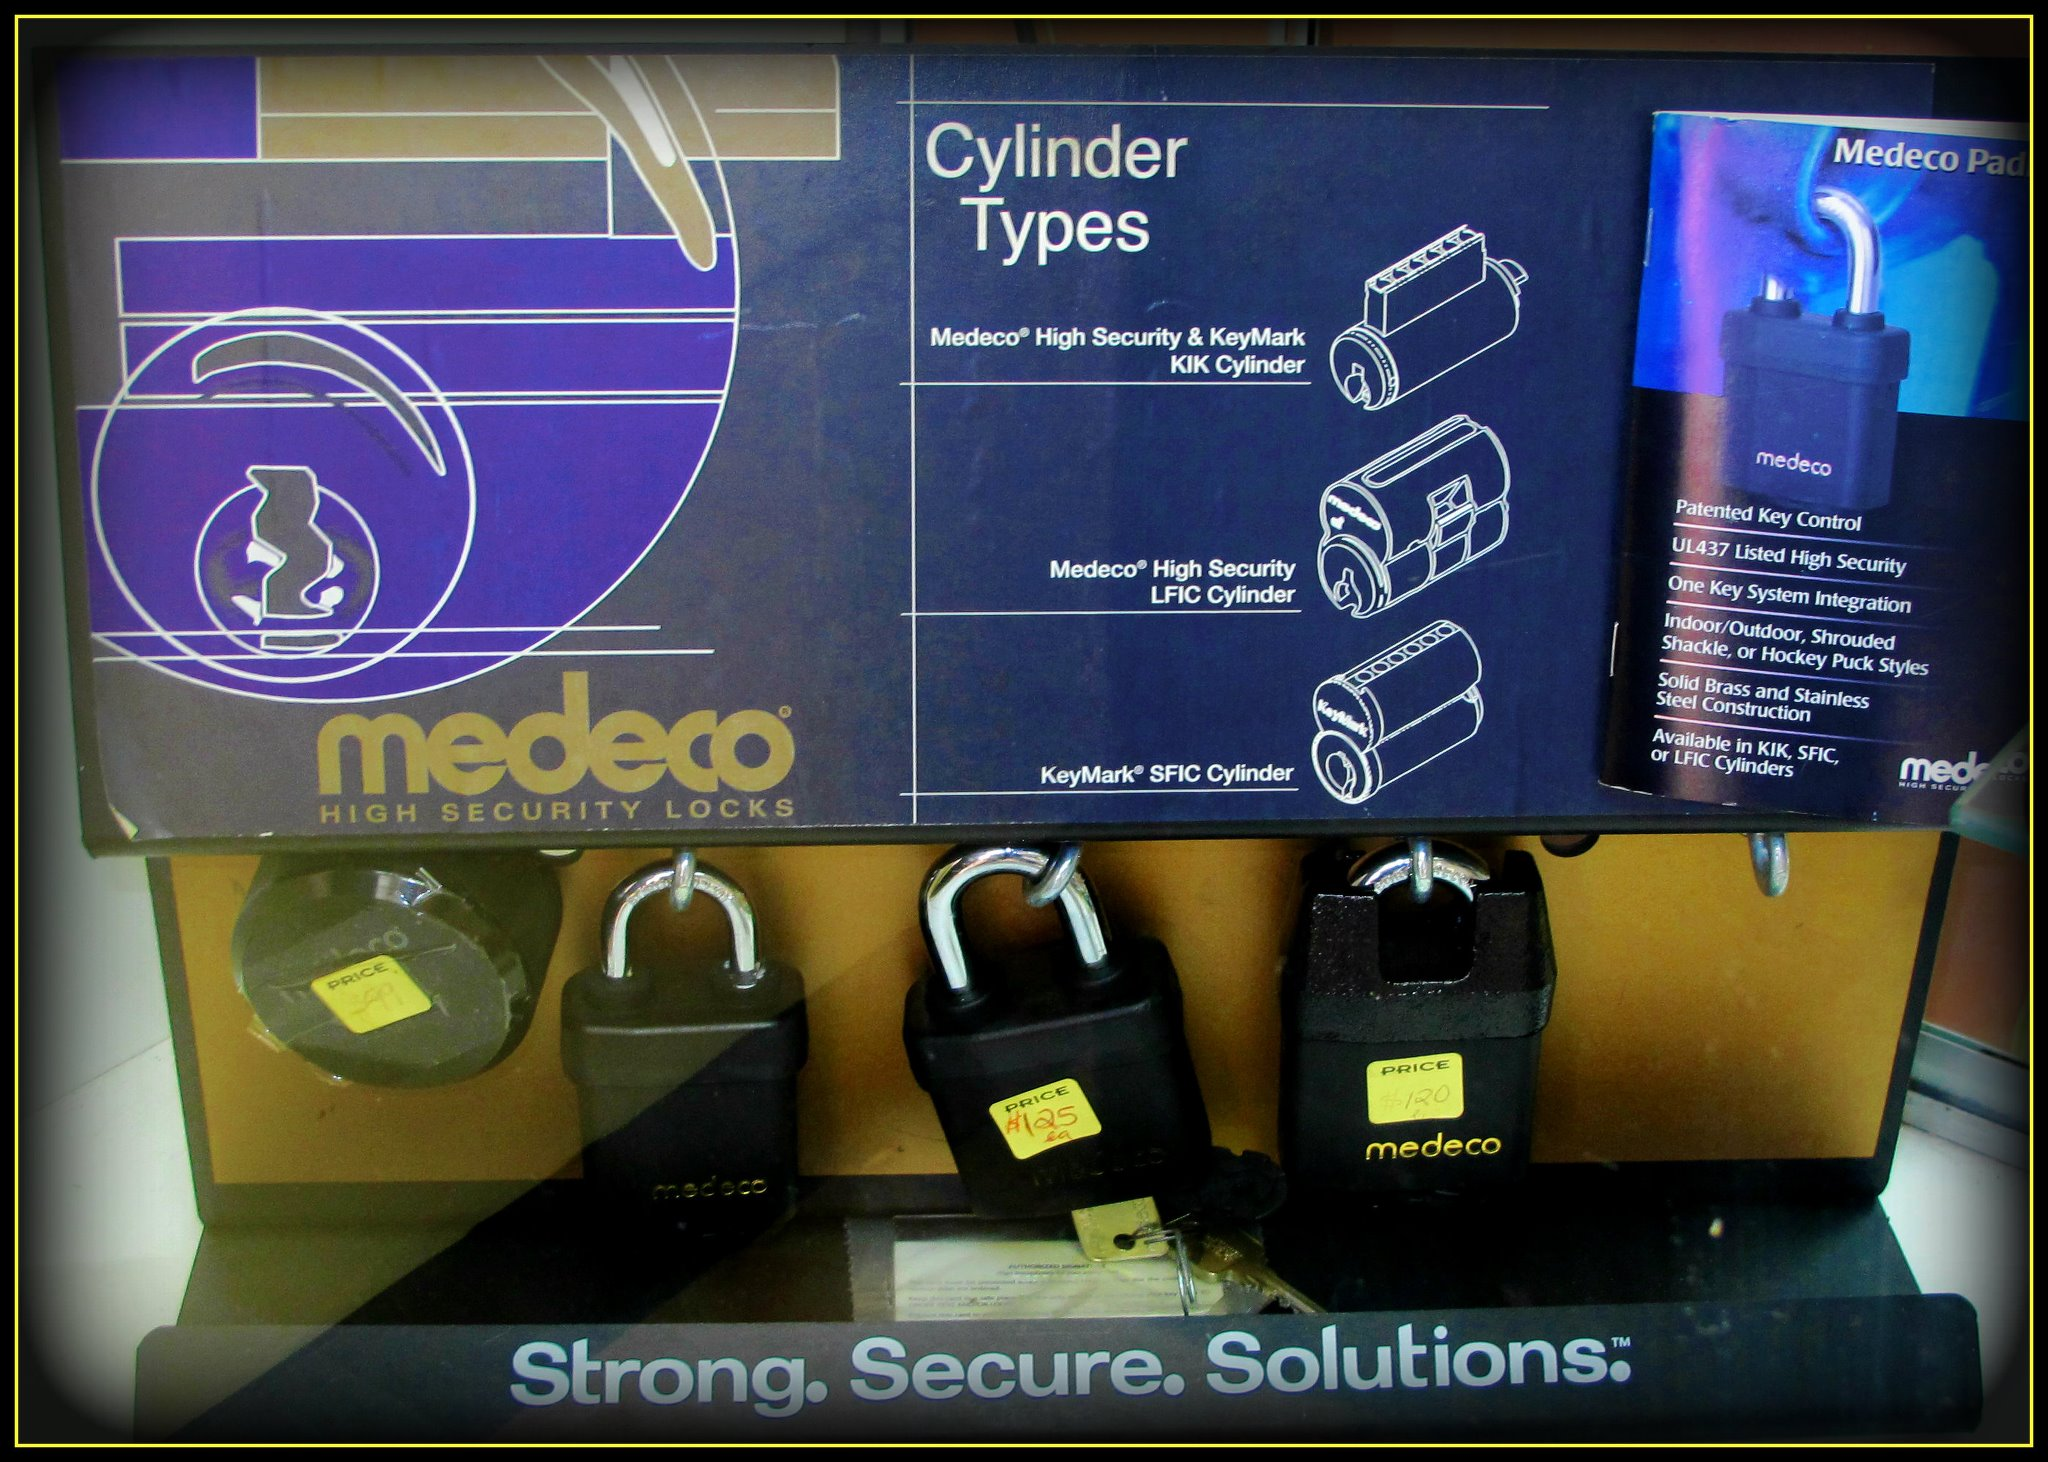 Medeco high security padlocks